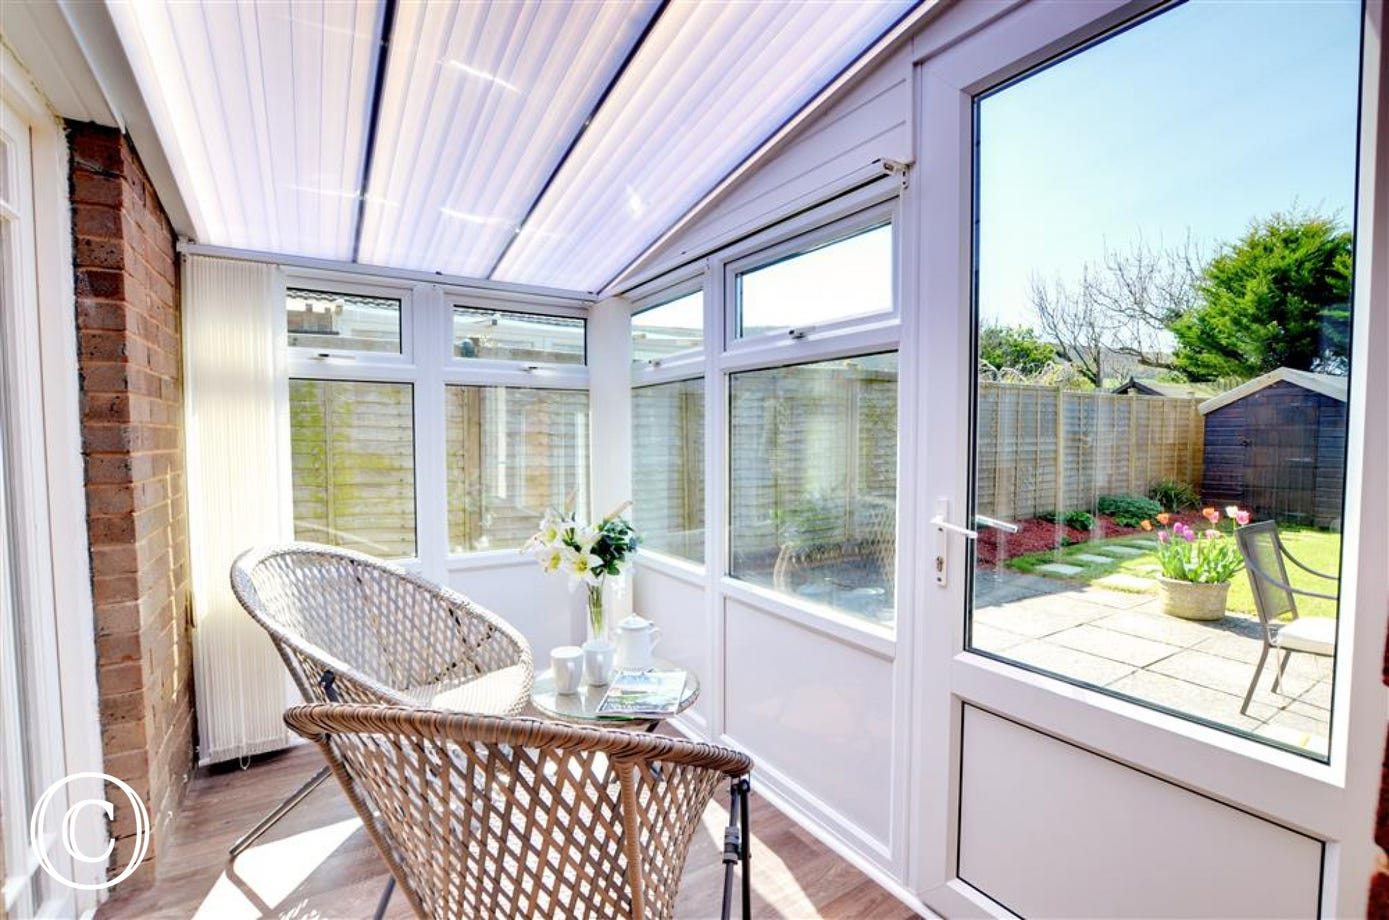 Small sun room with garden furniture which looks out onto the rear garden